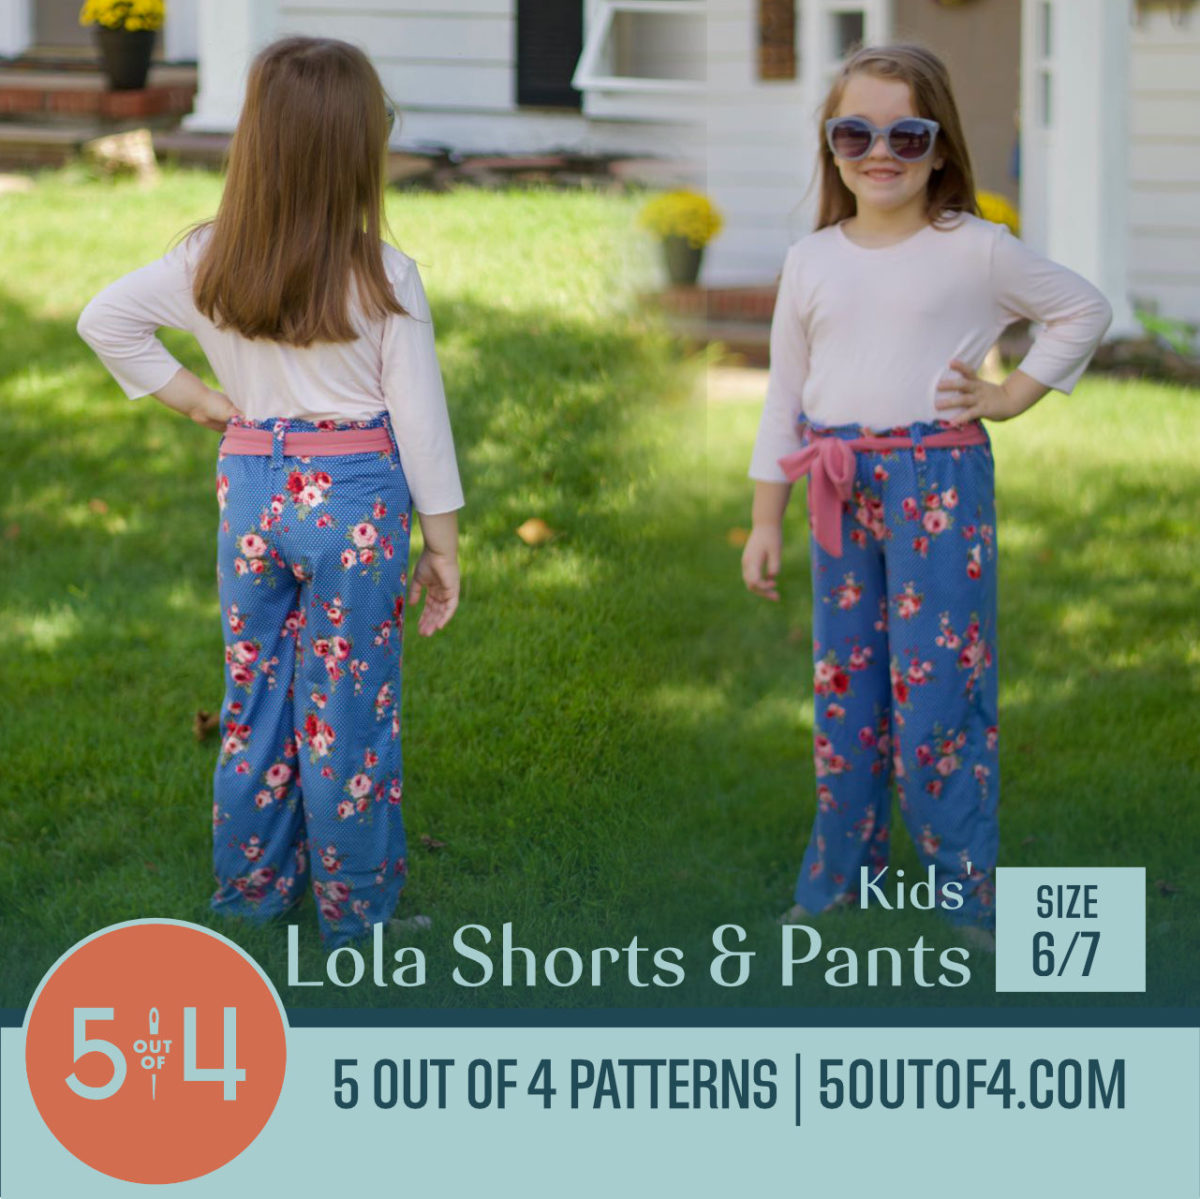 kids lola shorts and pants 6:7